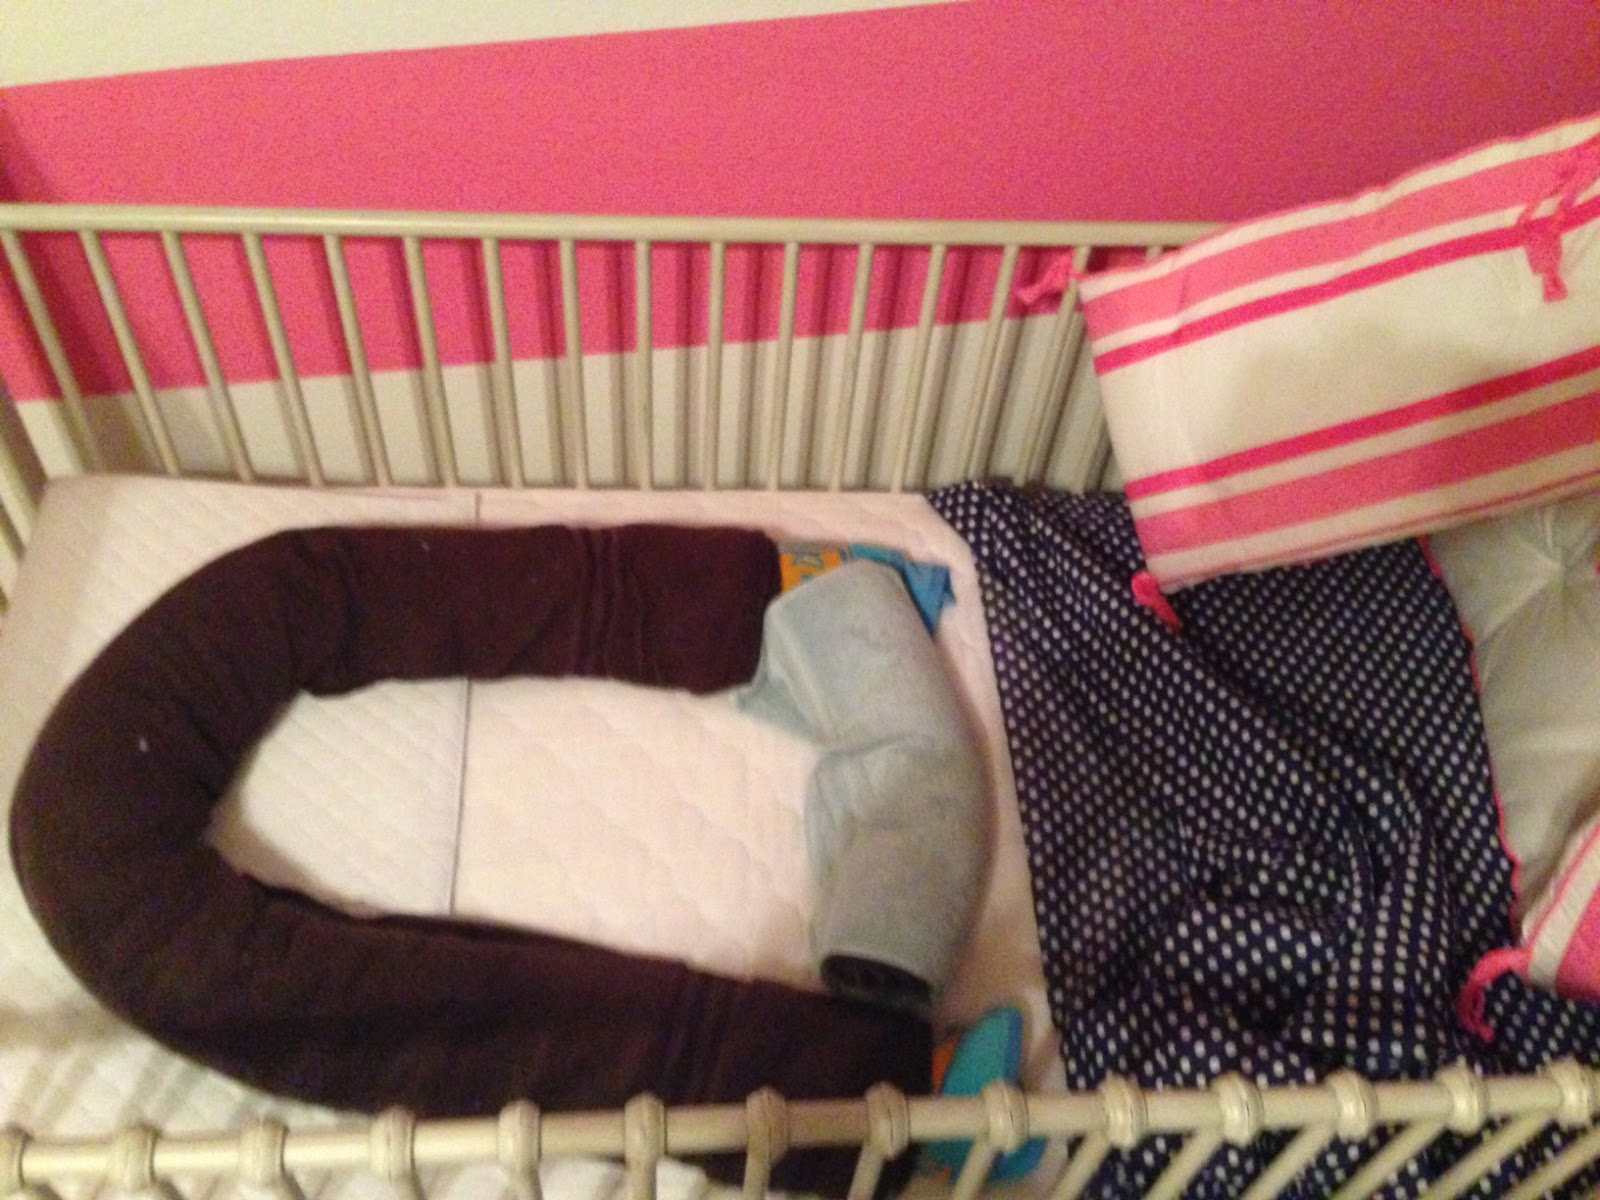 Crib wedges for babies - After Putting The Sheet Back On We Took A Couch Pillow And Stuffed It At The Bottom Of The Crib So That If She Scooted Down At All Through The Night